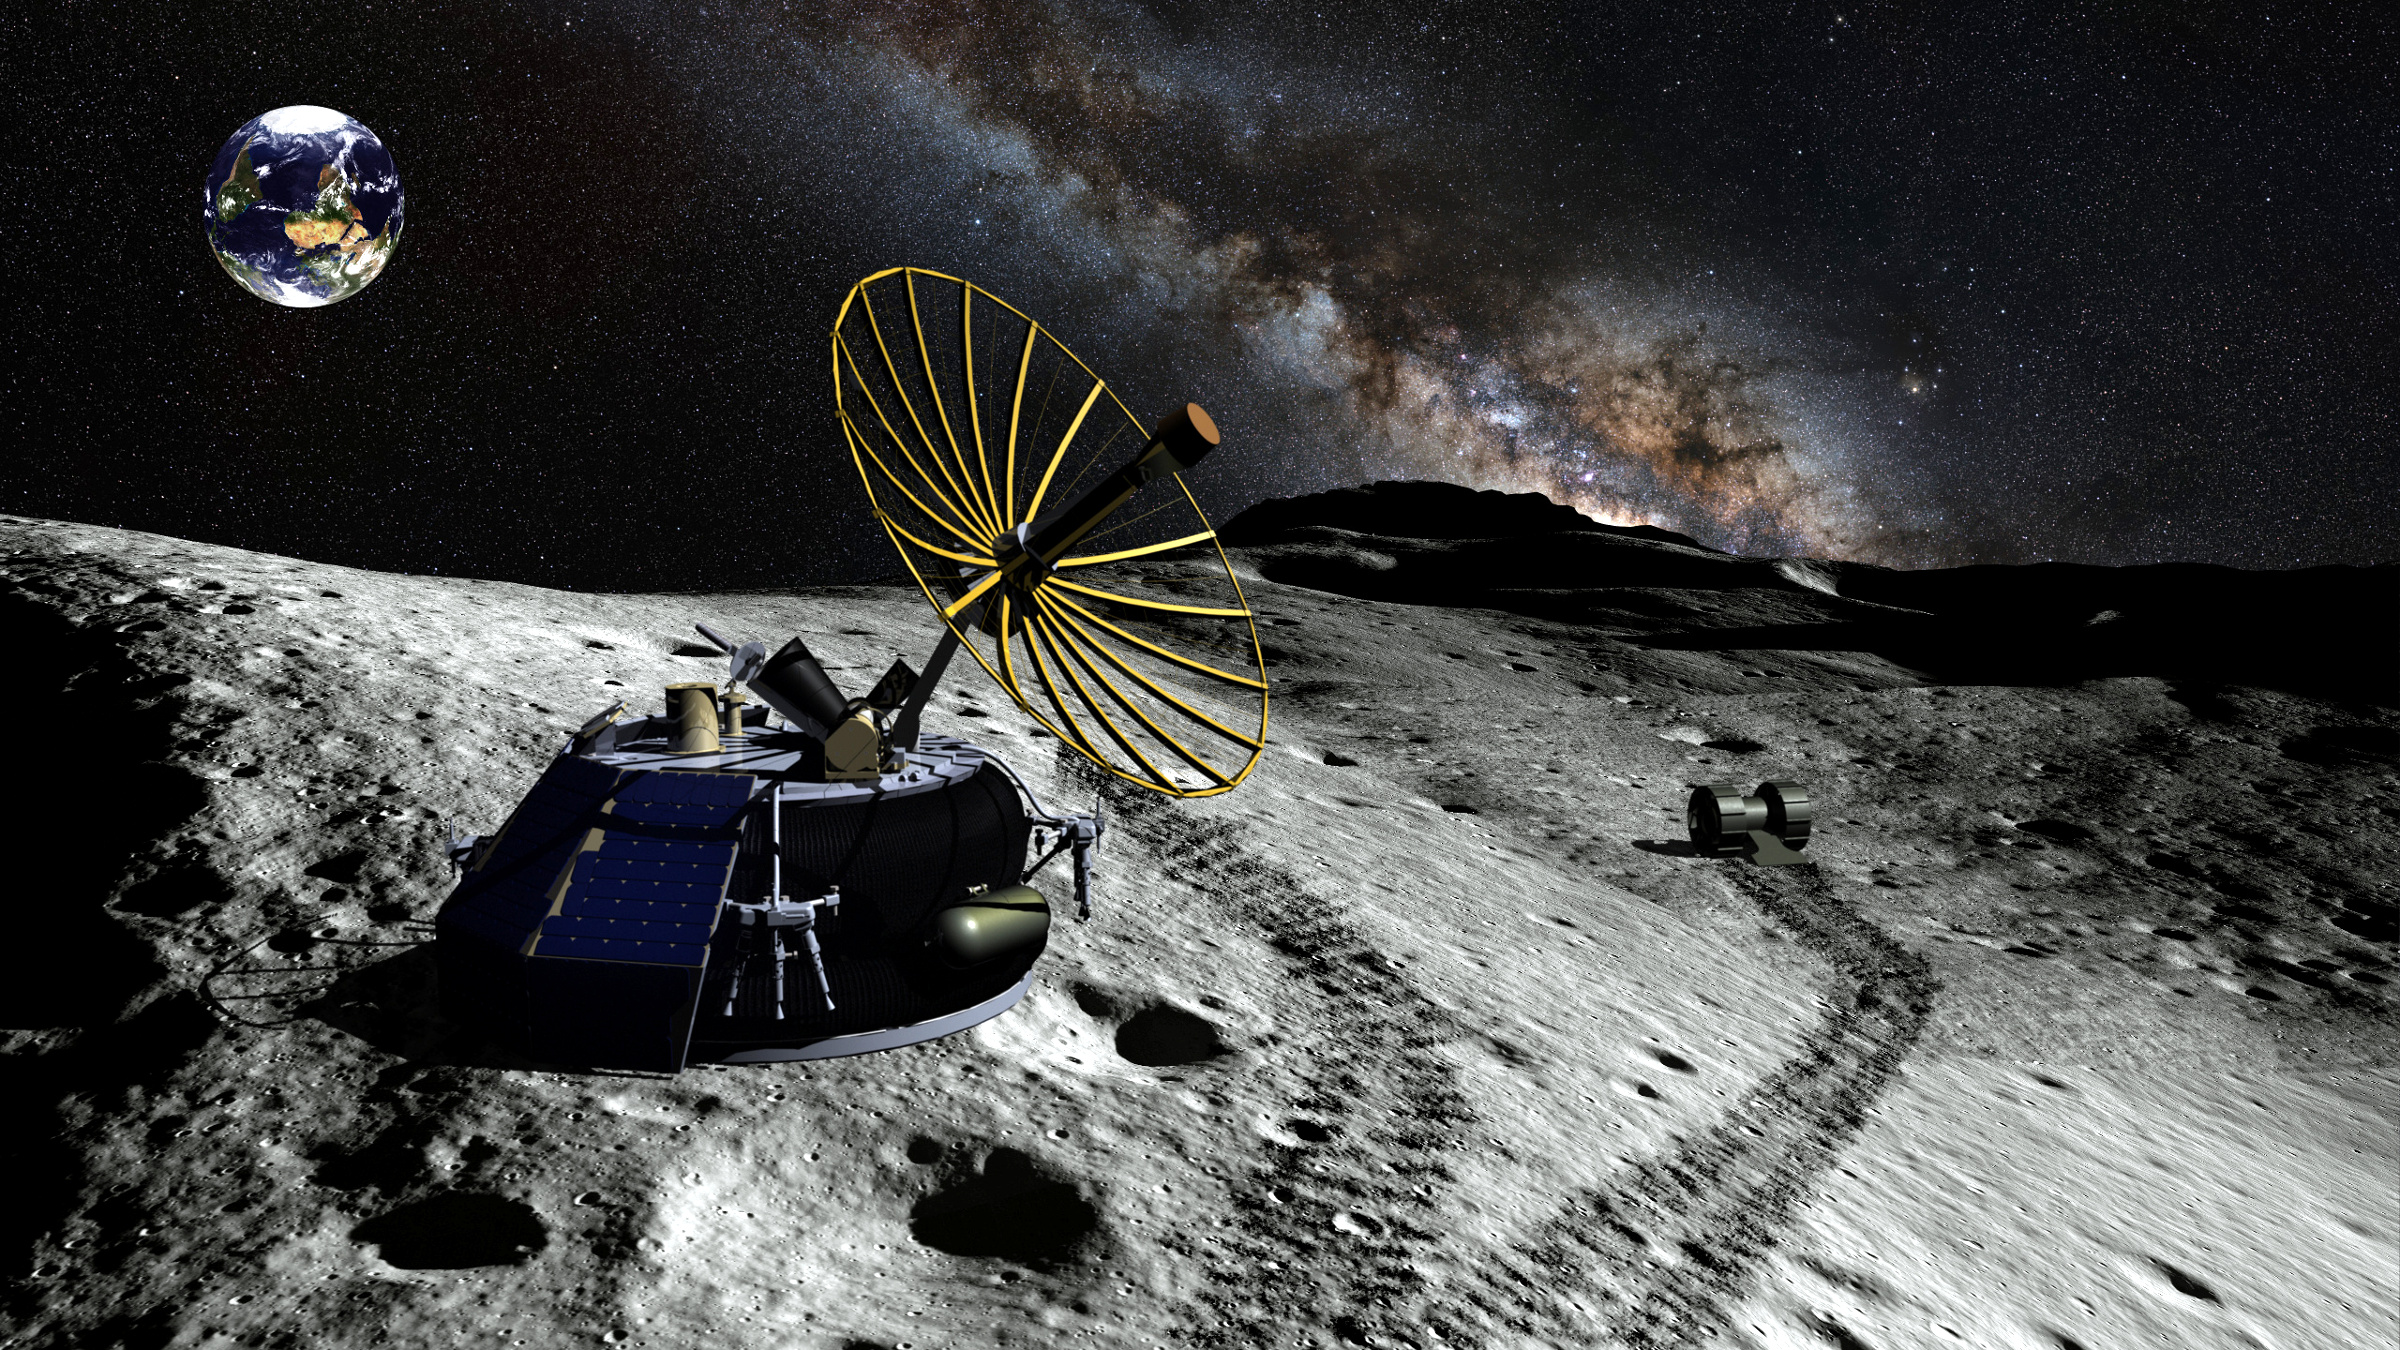 An artists' rendering of the Moon Express MX-1 lander.